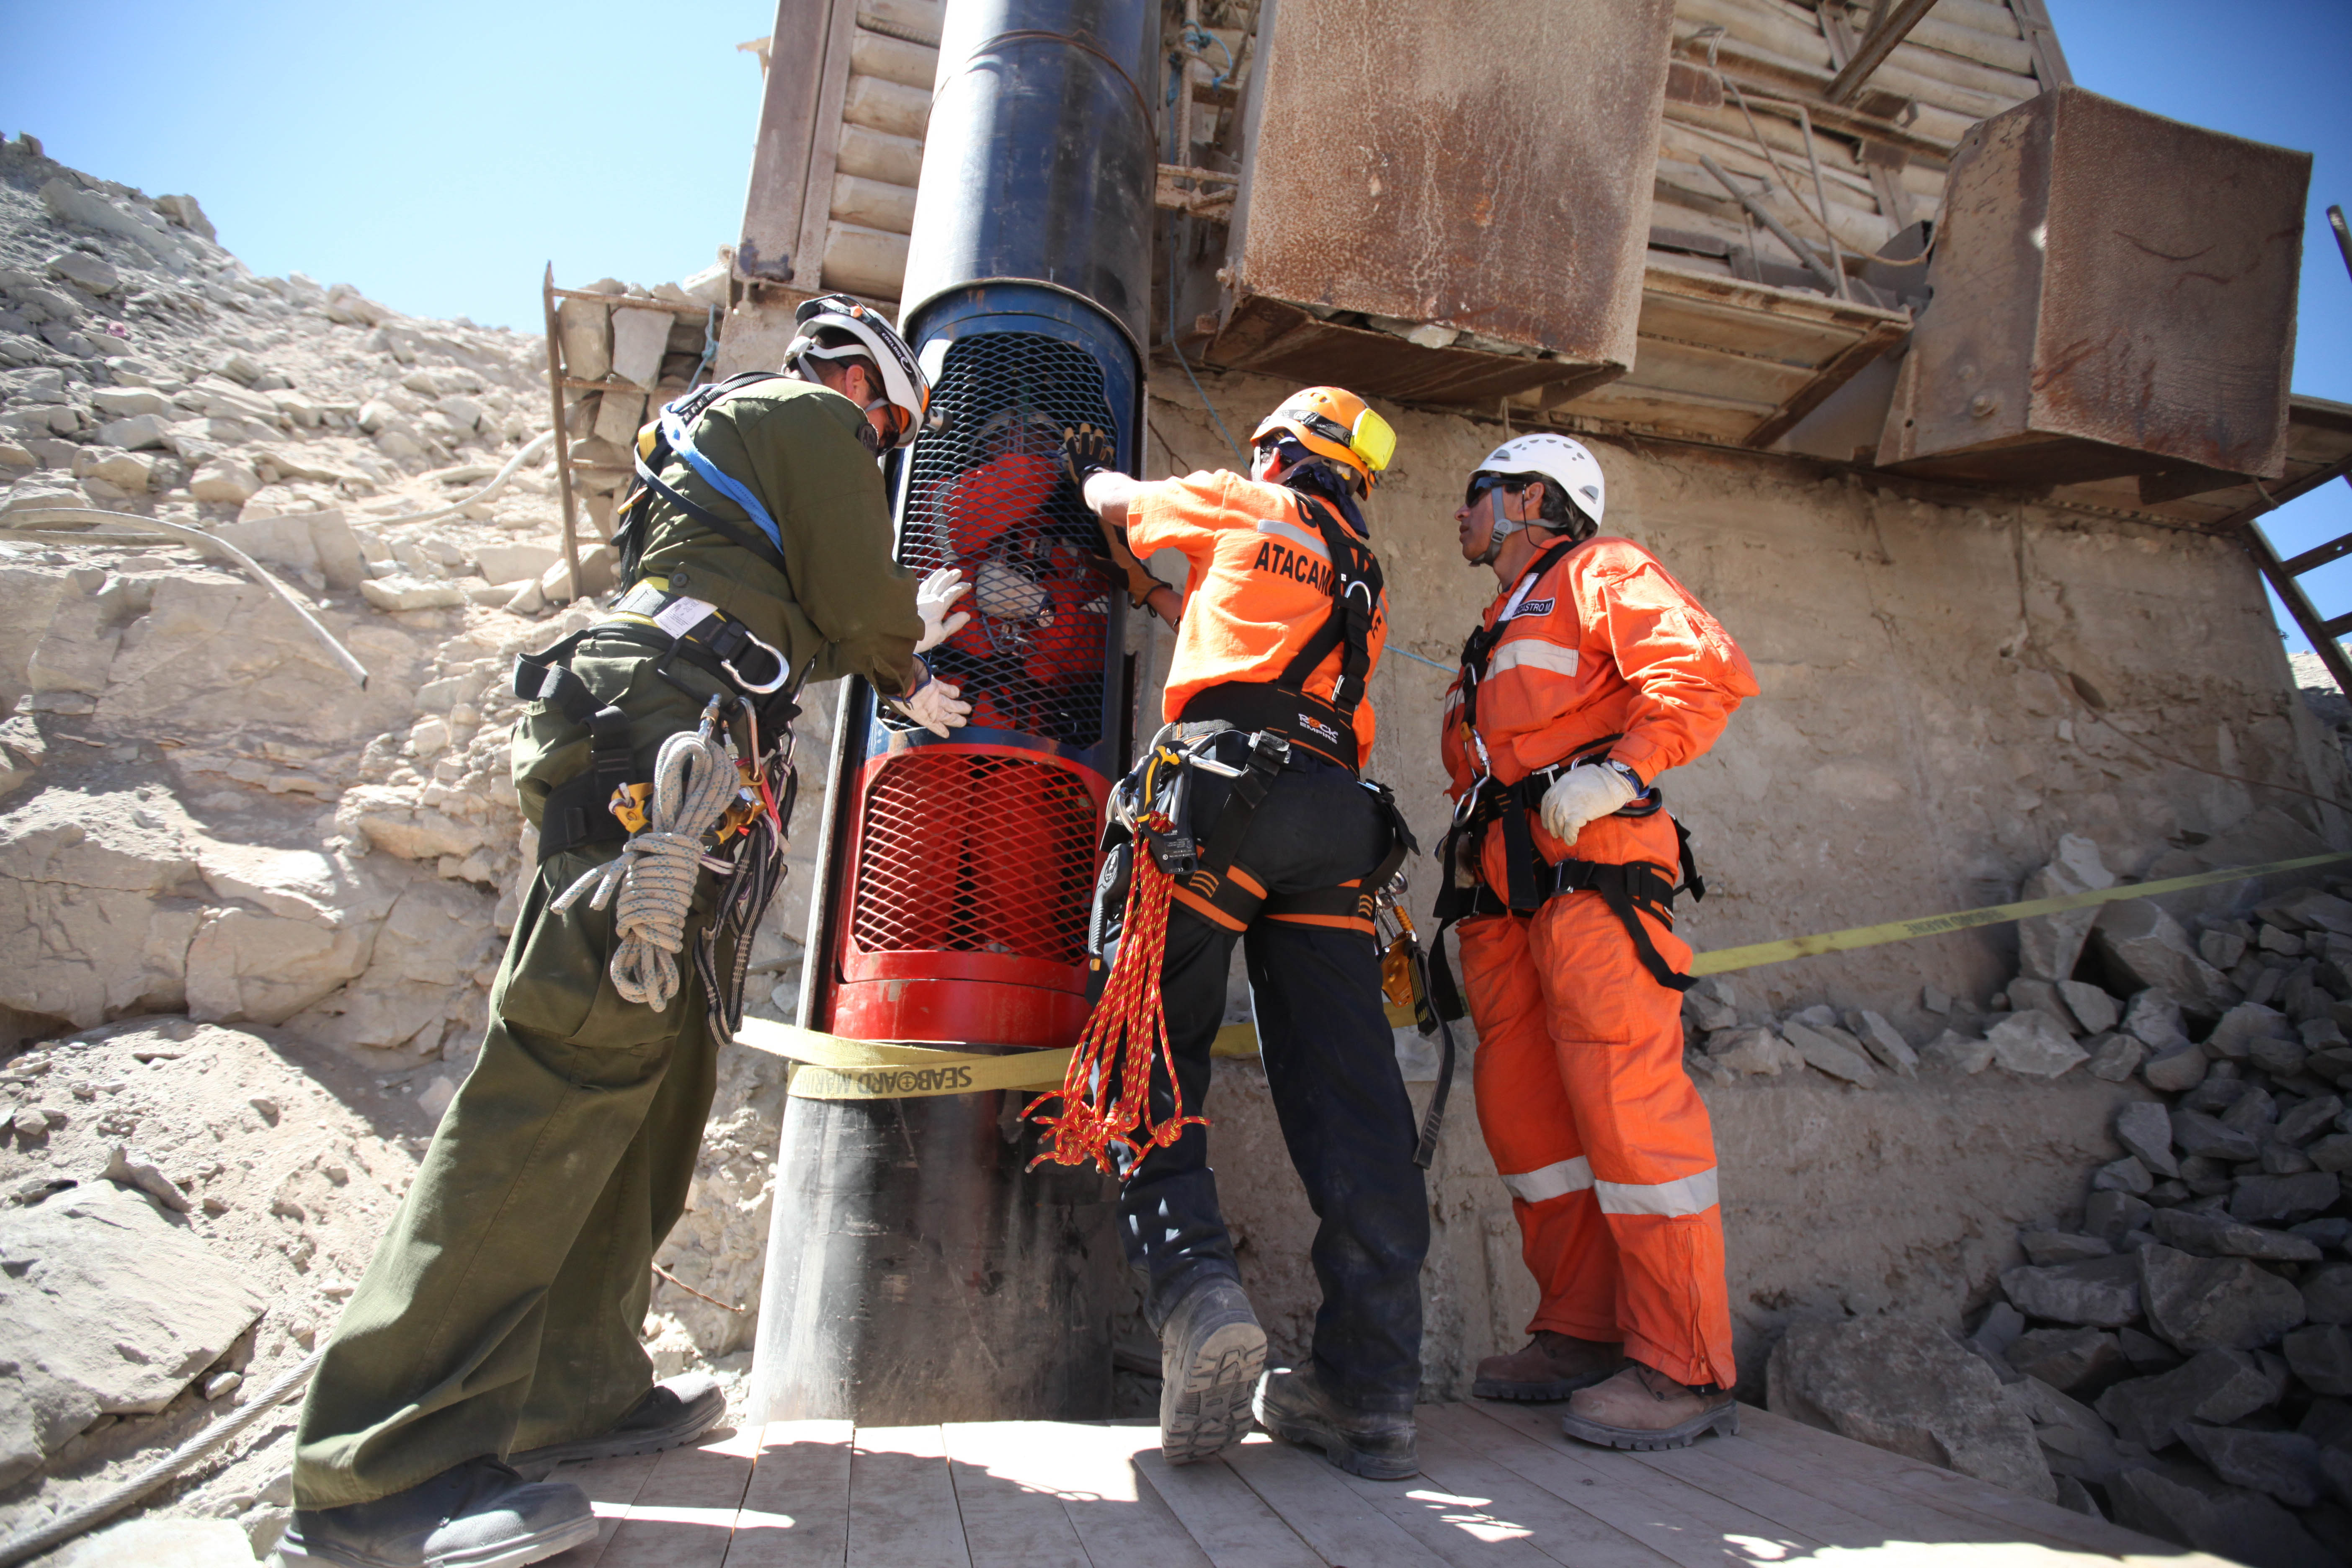 rescue of miners in chile After weeks of frantic drilling, their rescue finally appears to be imminent  san  jose mine, chile—in early august, 33 miners descended.